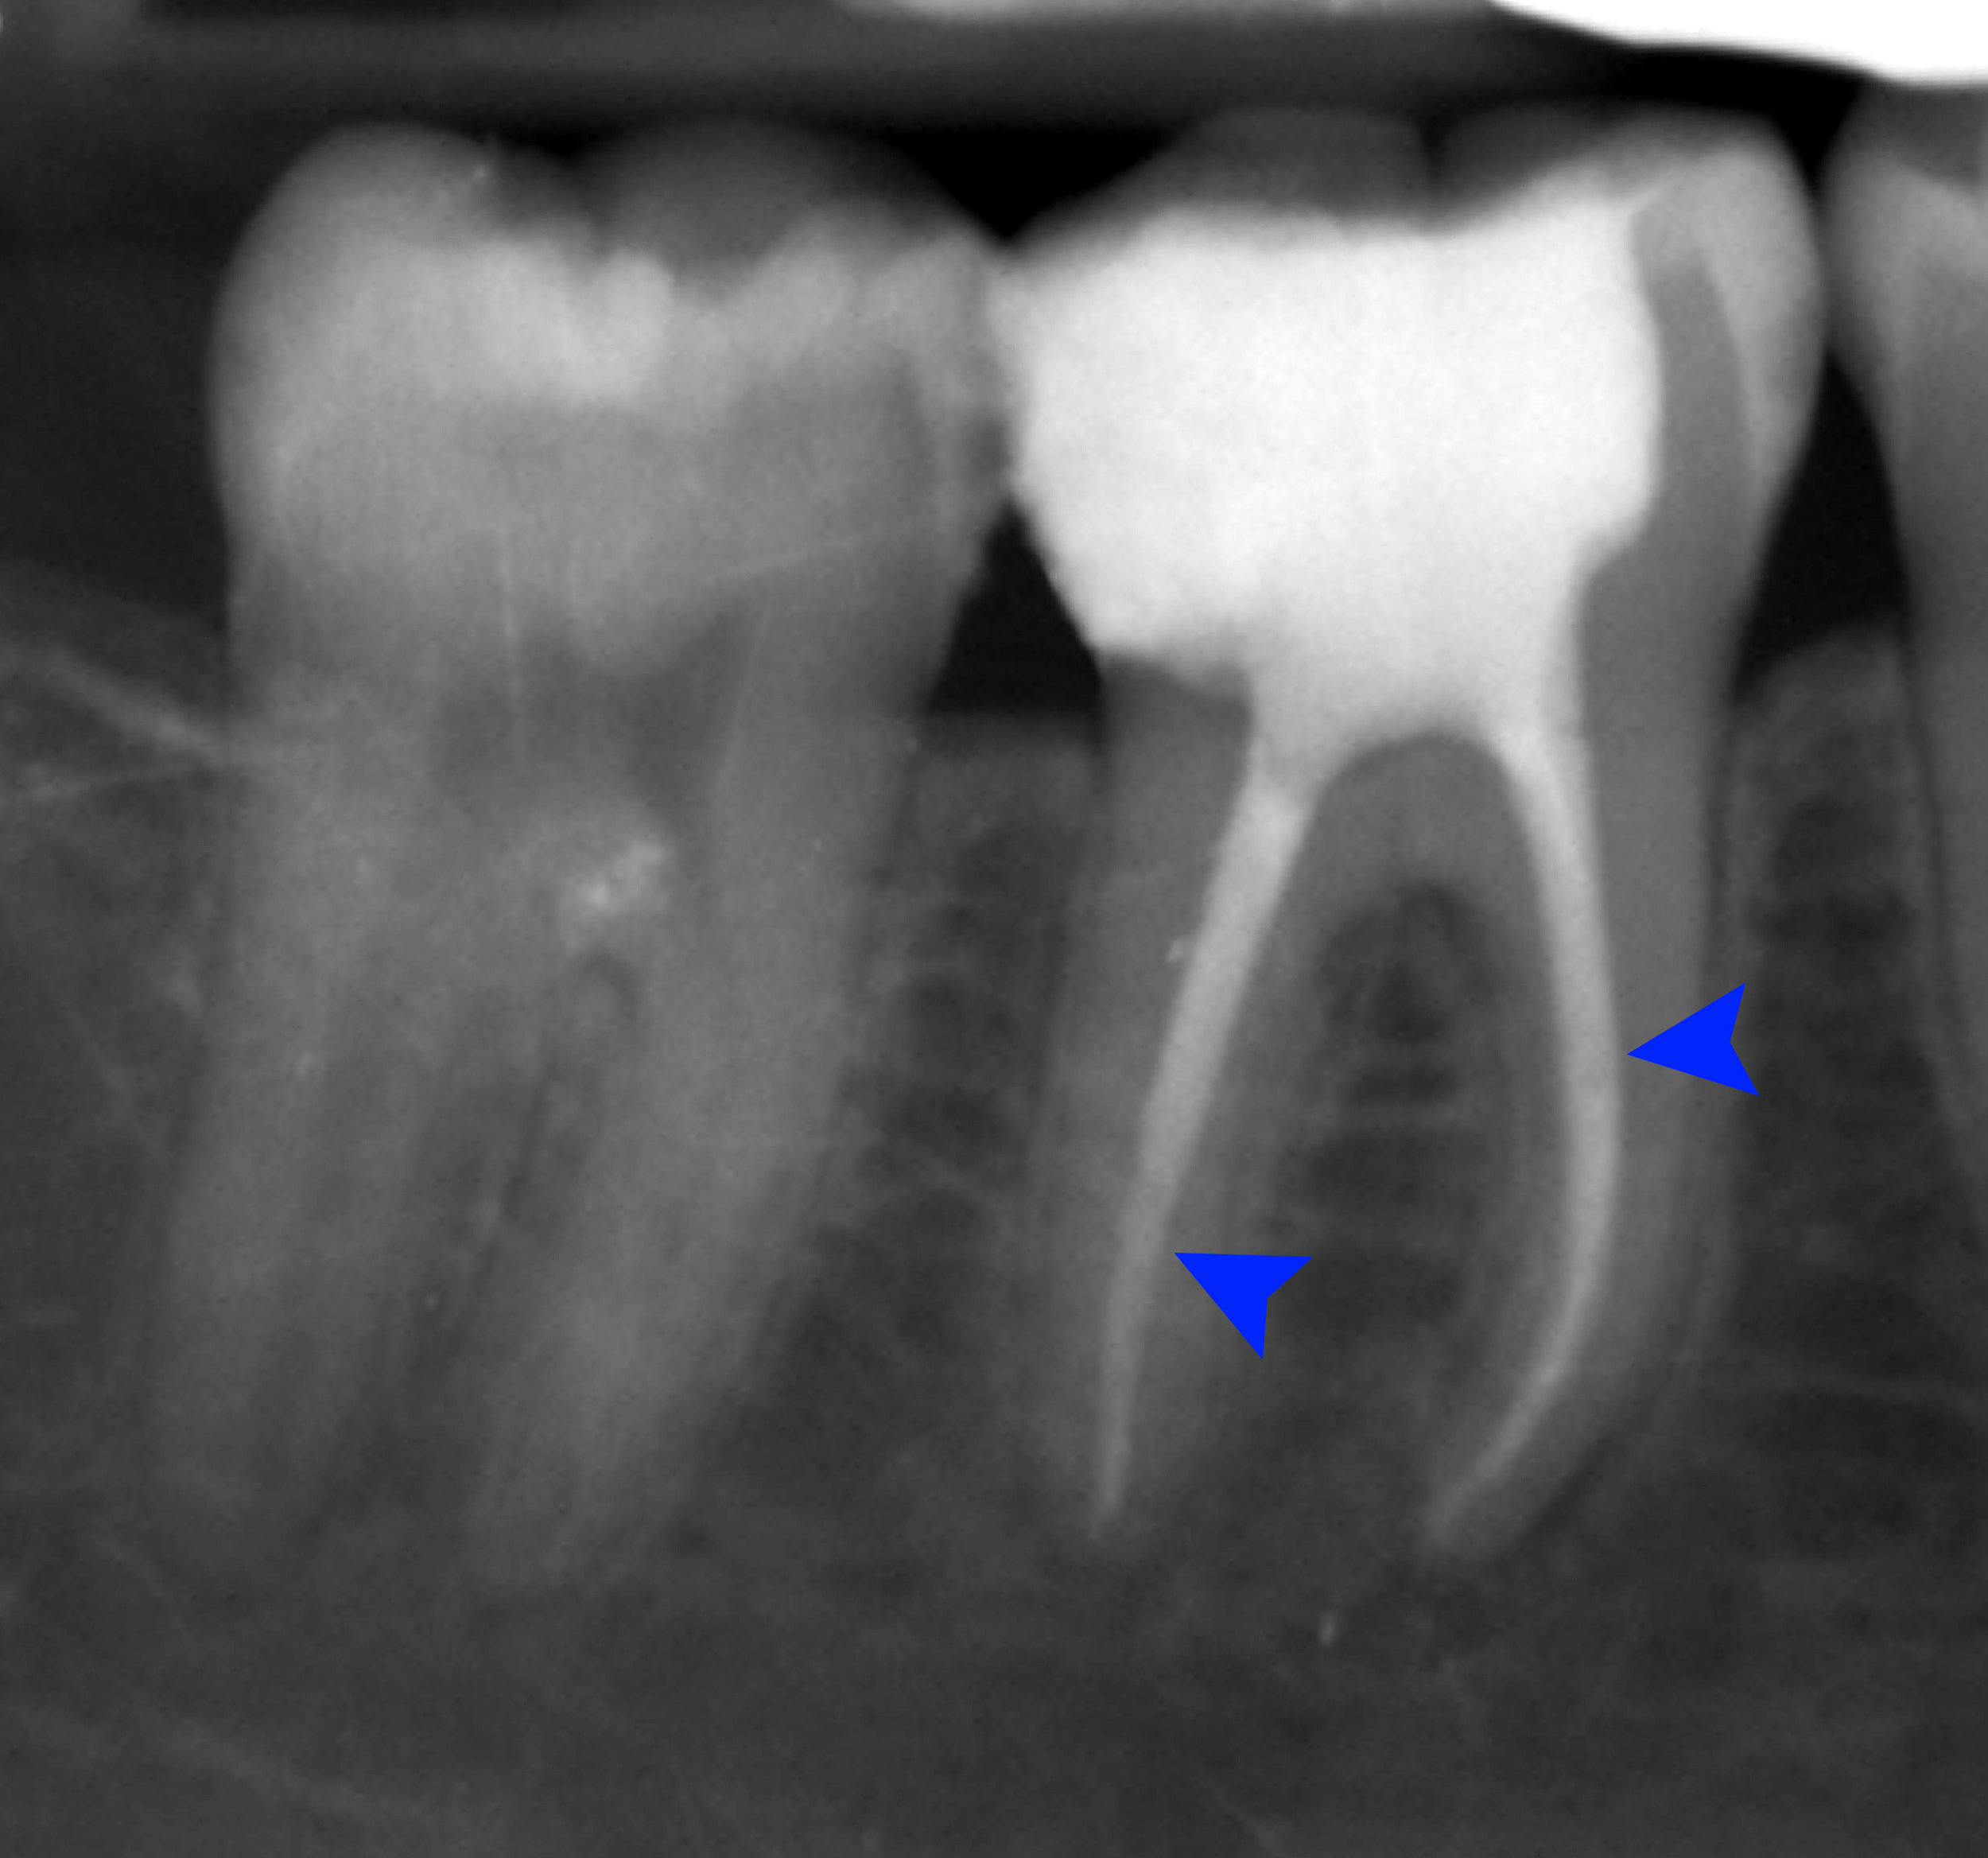 Dental Root canal treatment